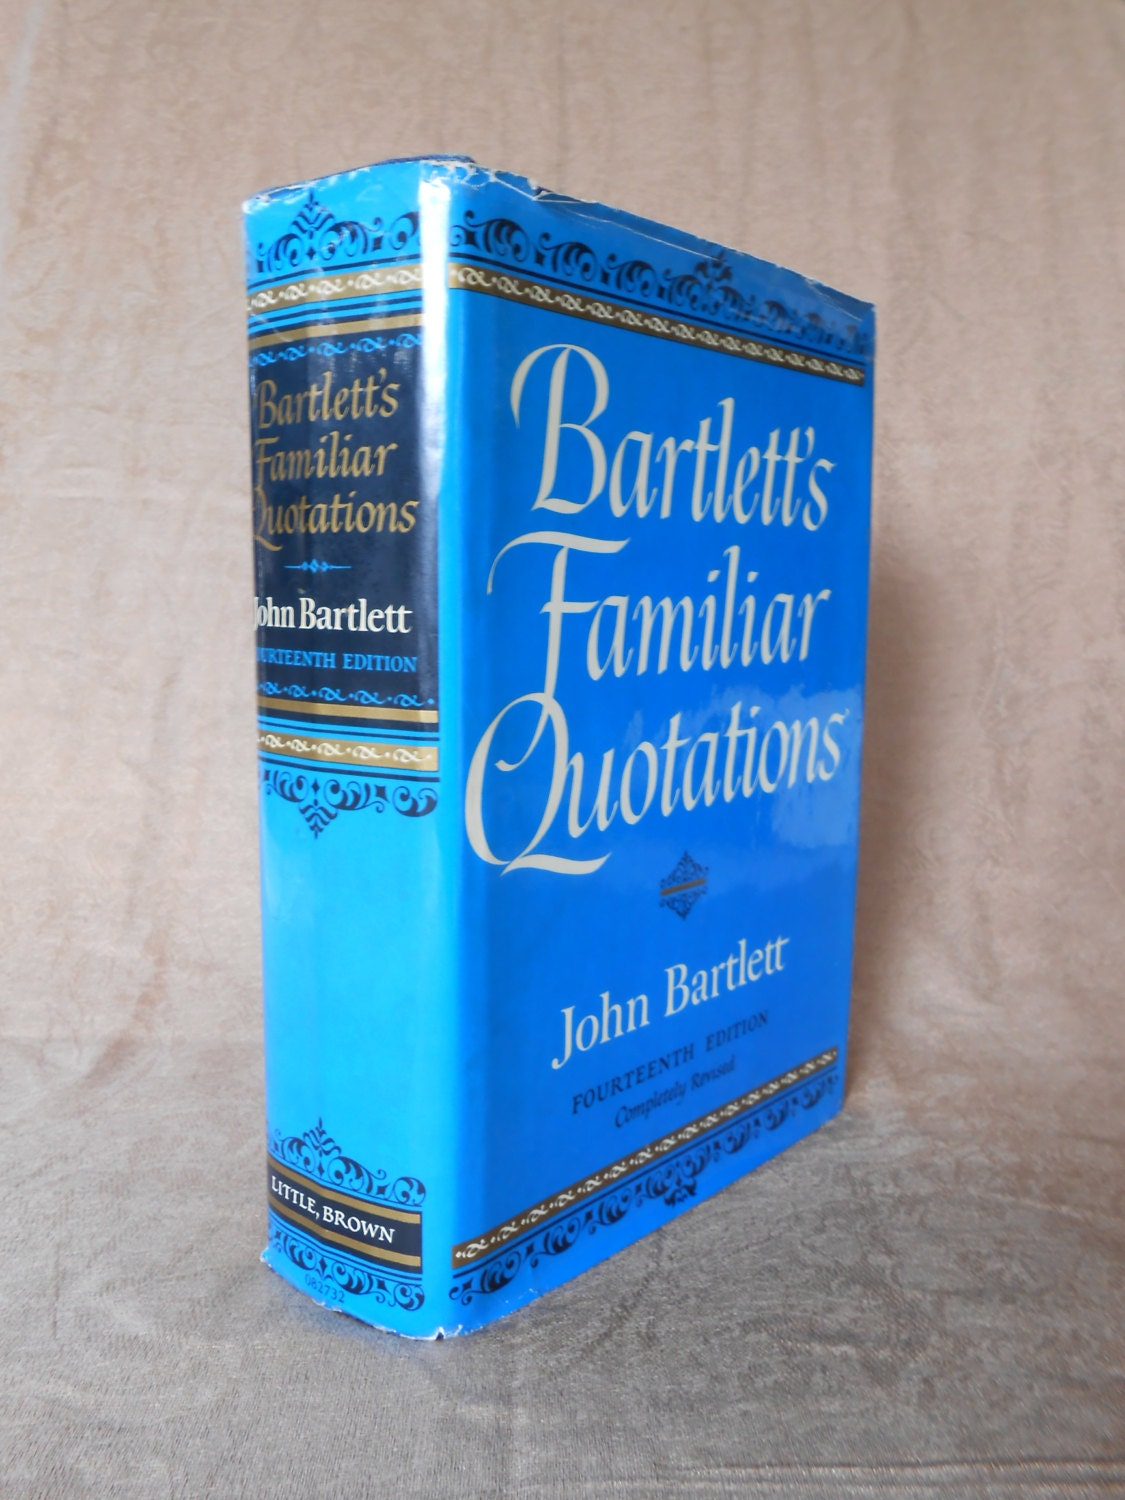 1968 Bartlett's Familiar Quotations Blue & Gold hardback - RetroPhoenix